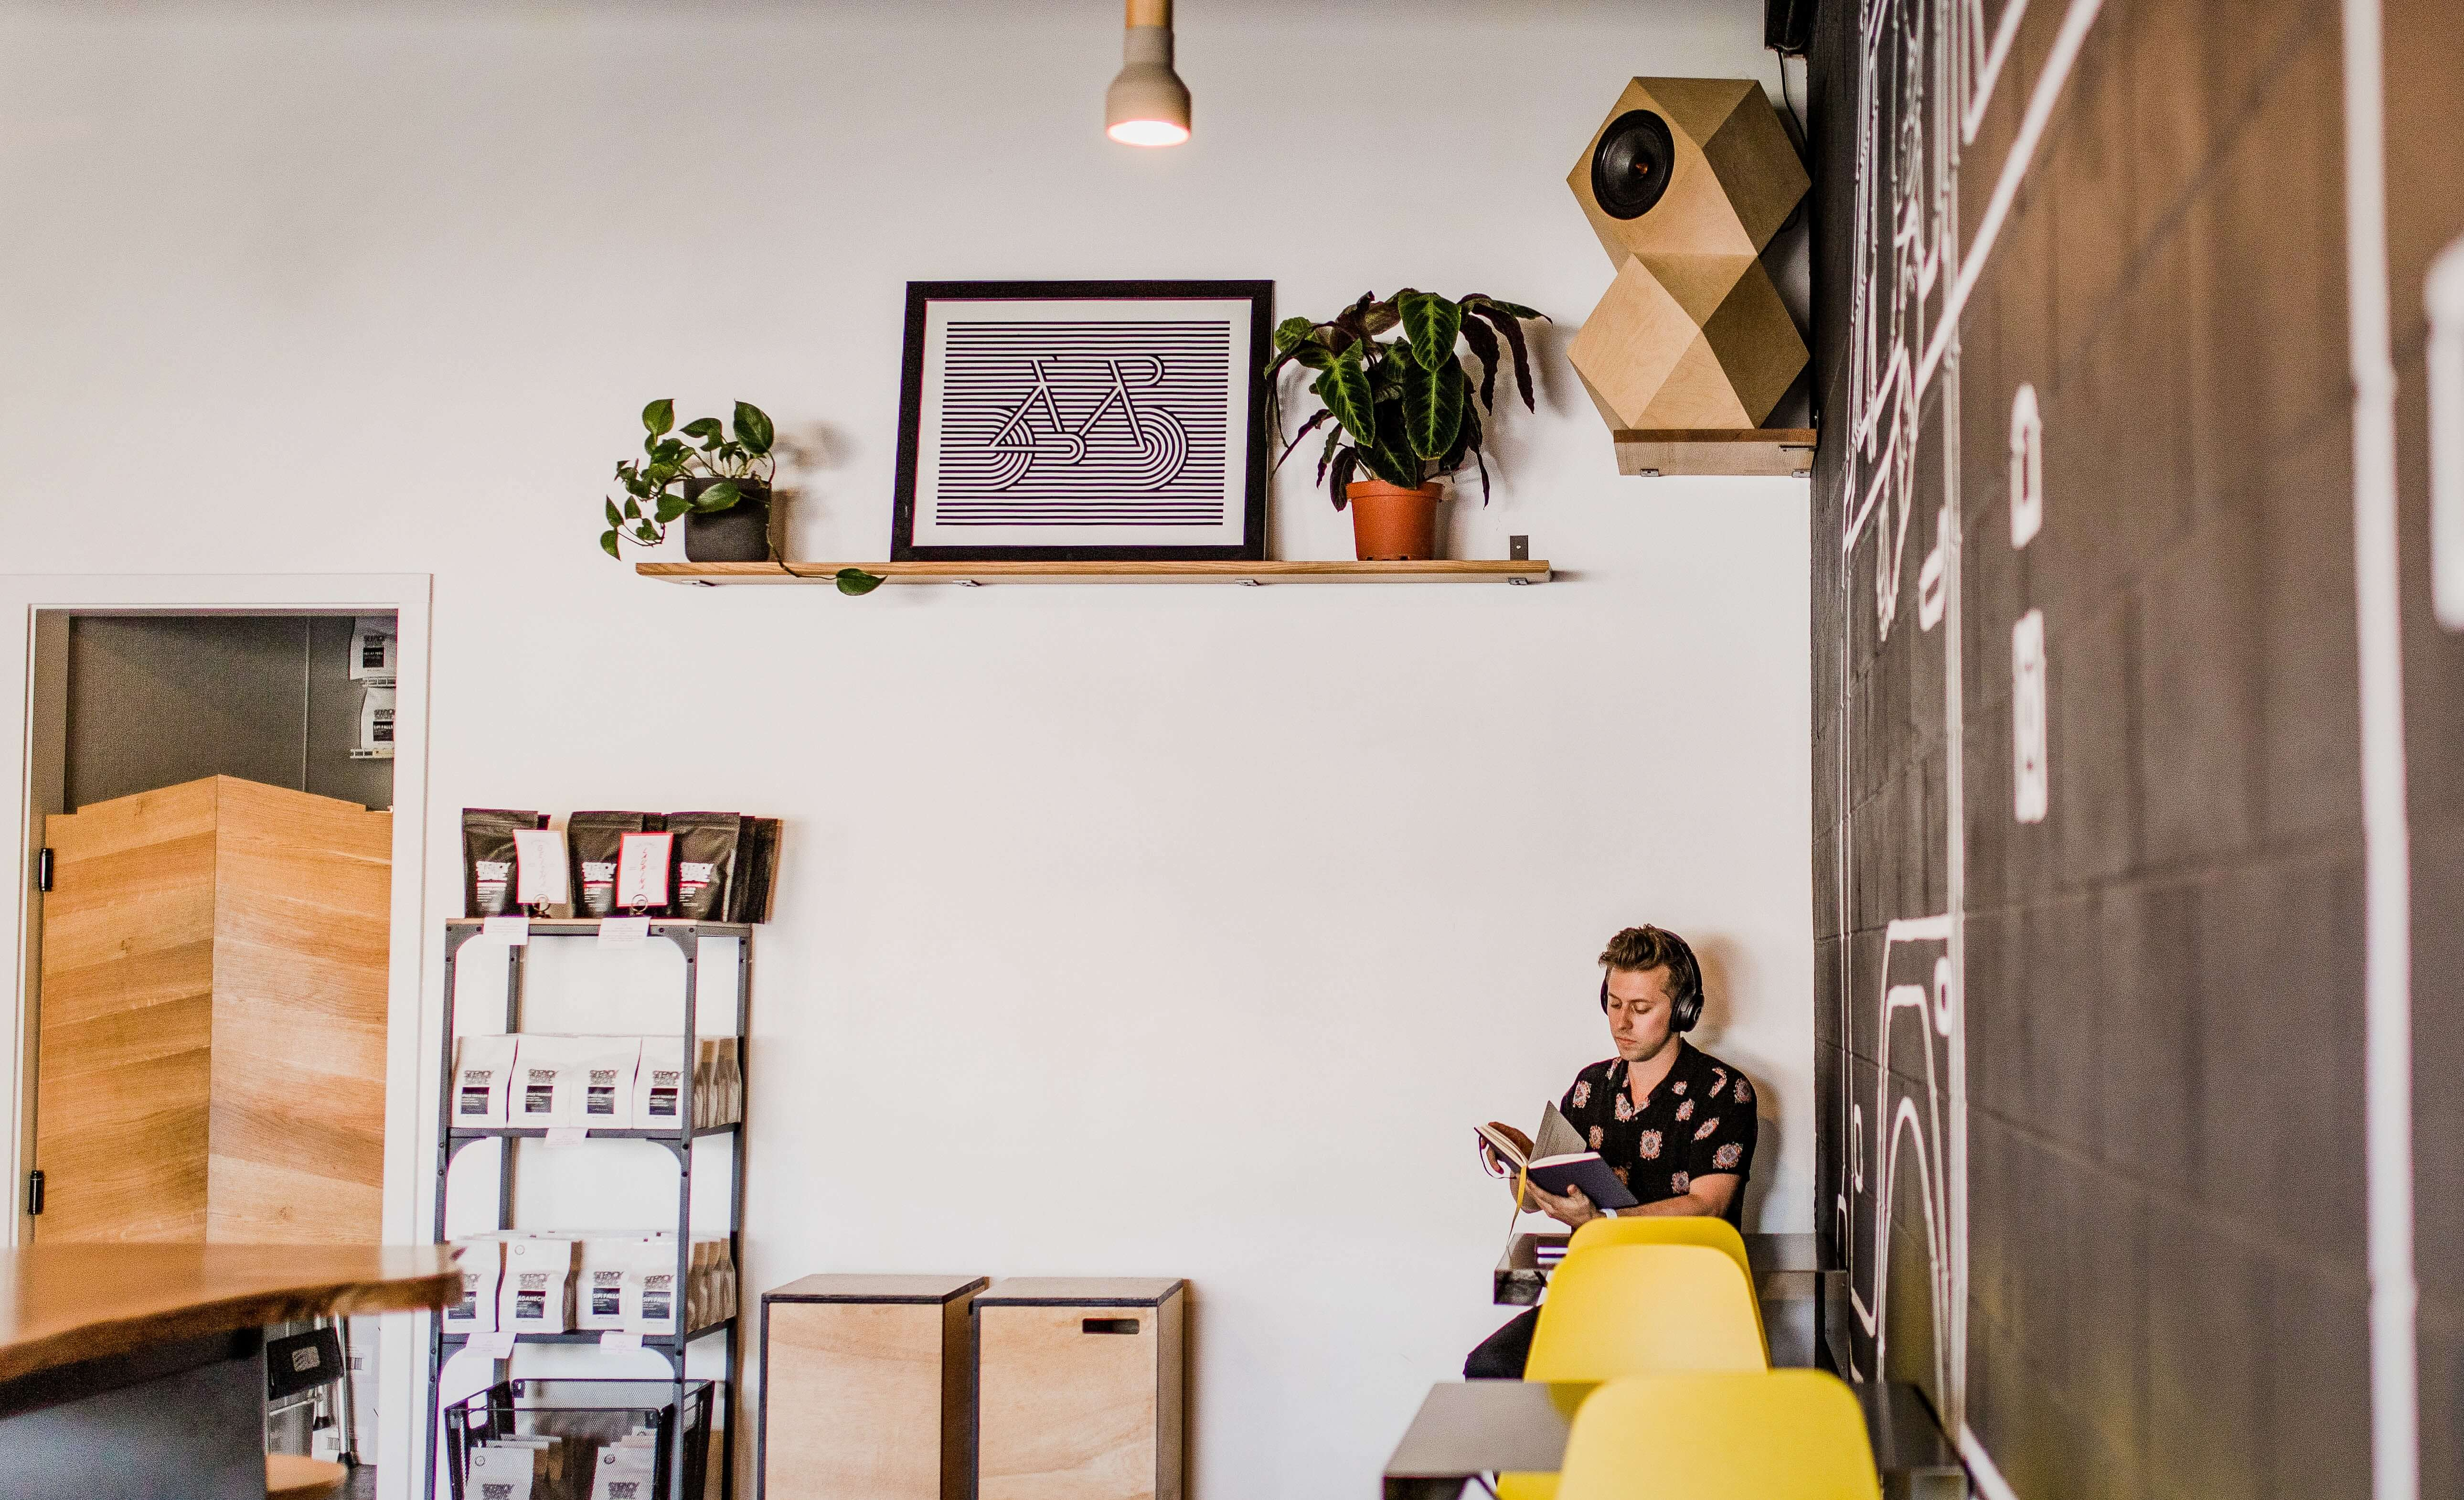 Making The Brand: Five Affordable Brand-Building Tips For Solopreneurs